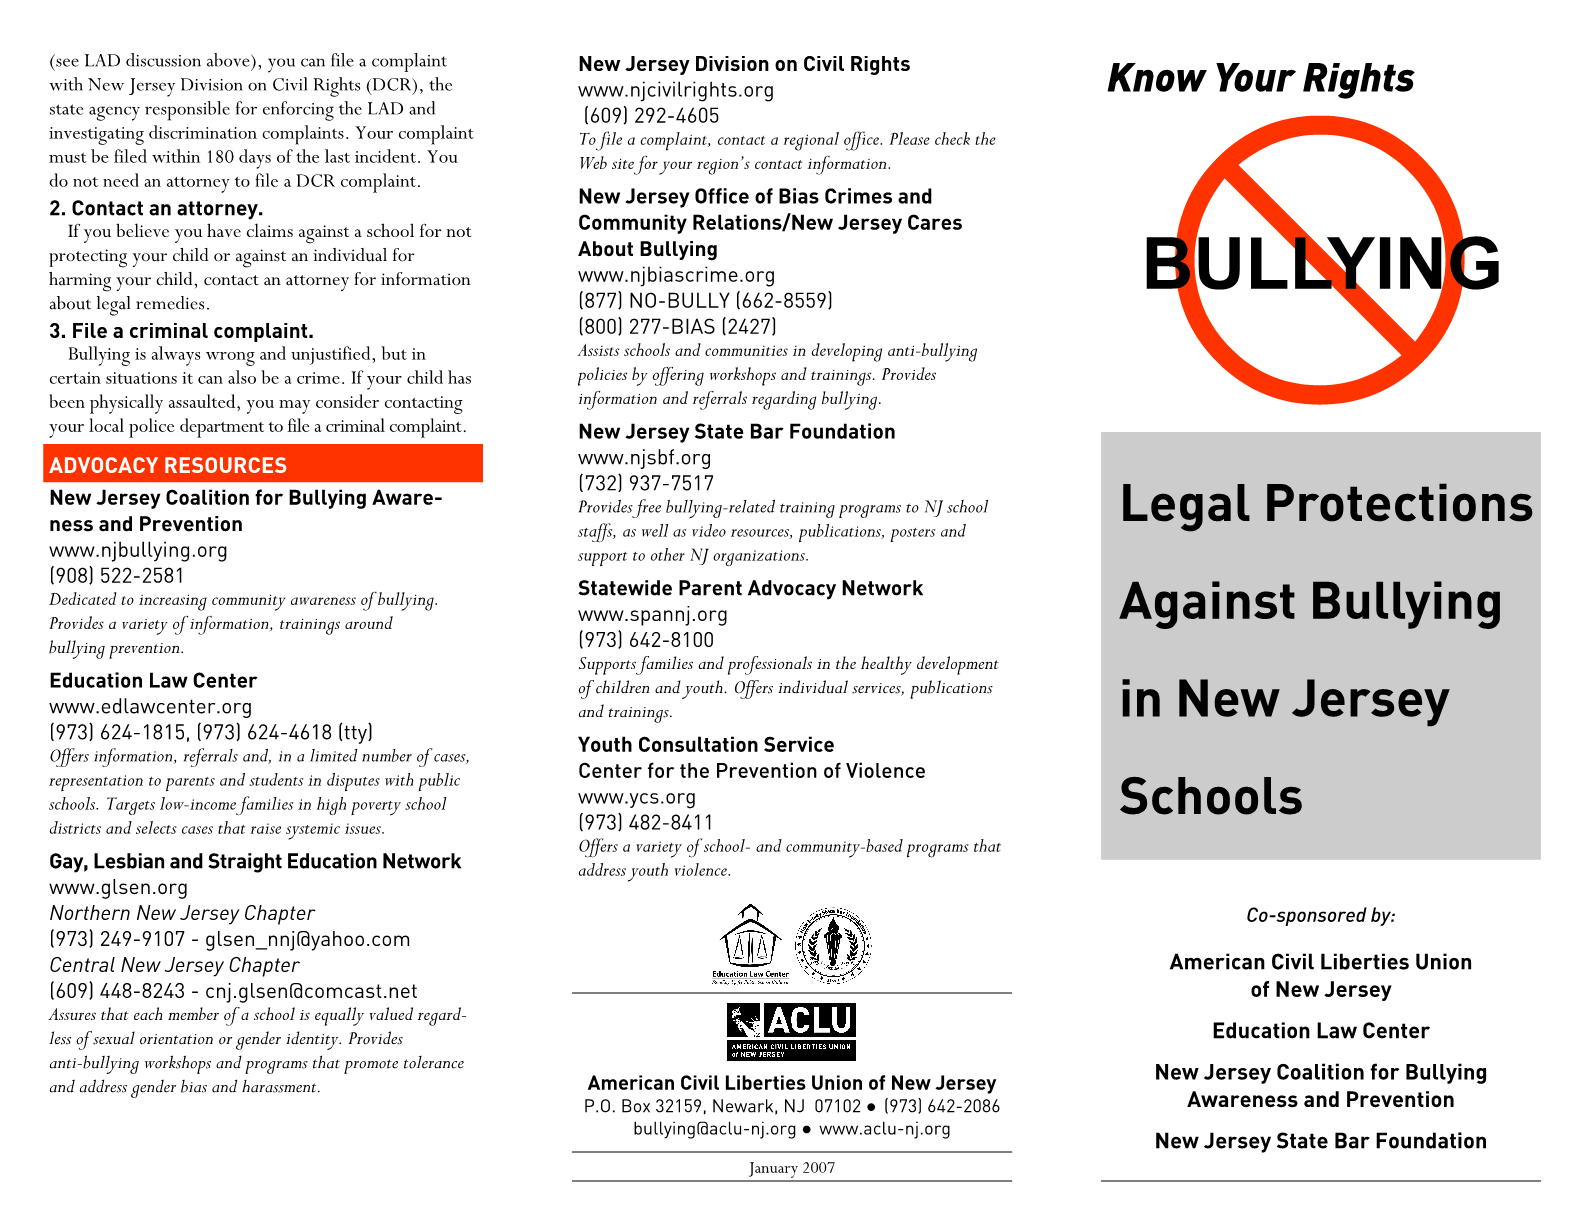 Legal Protections Against Bullying in New Jersey Schools